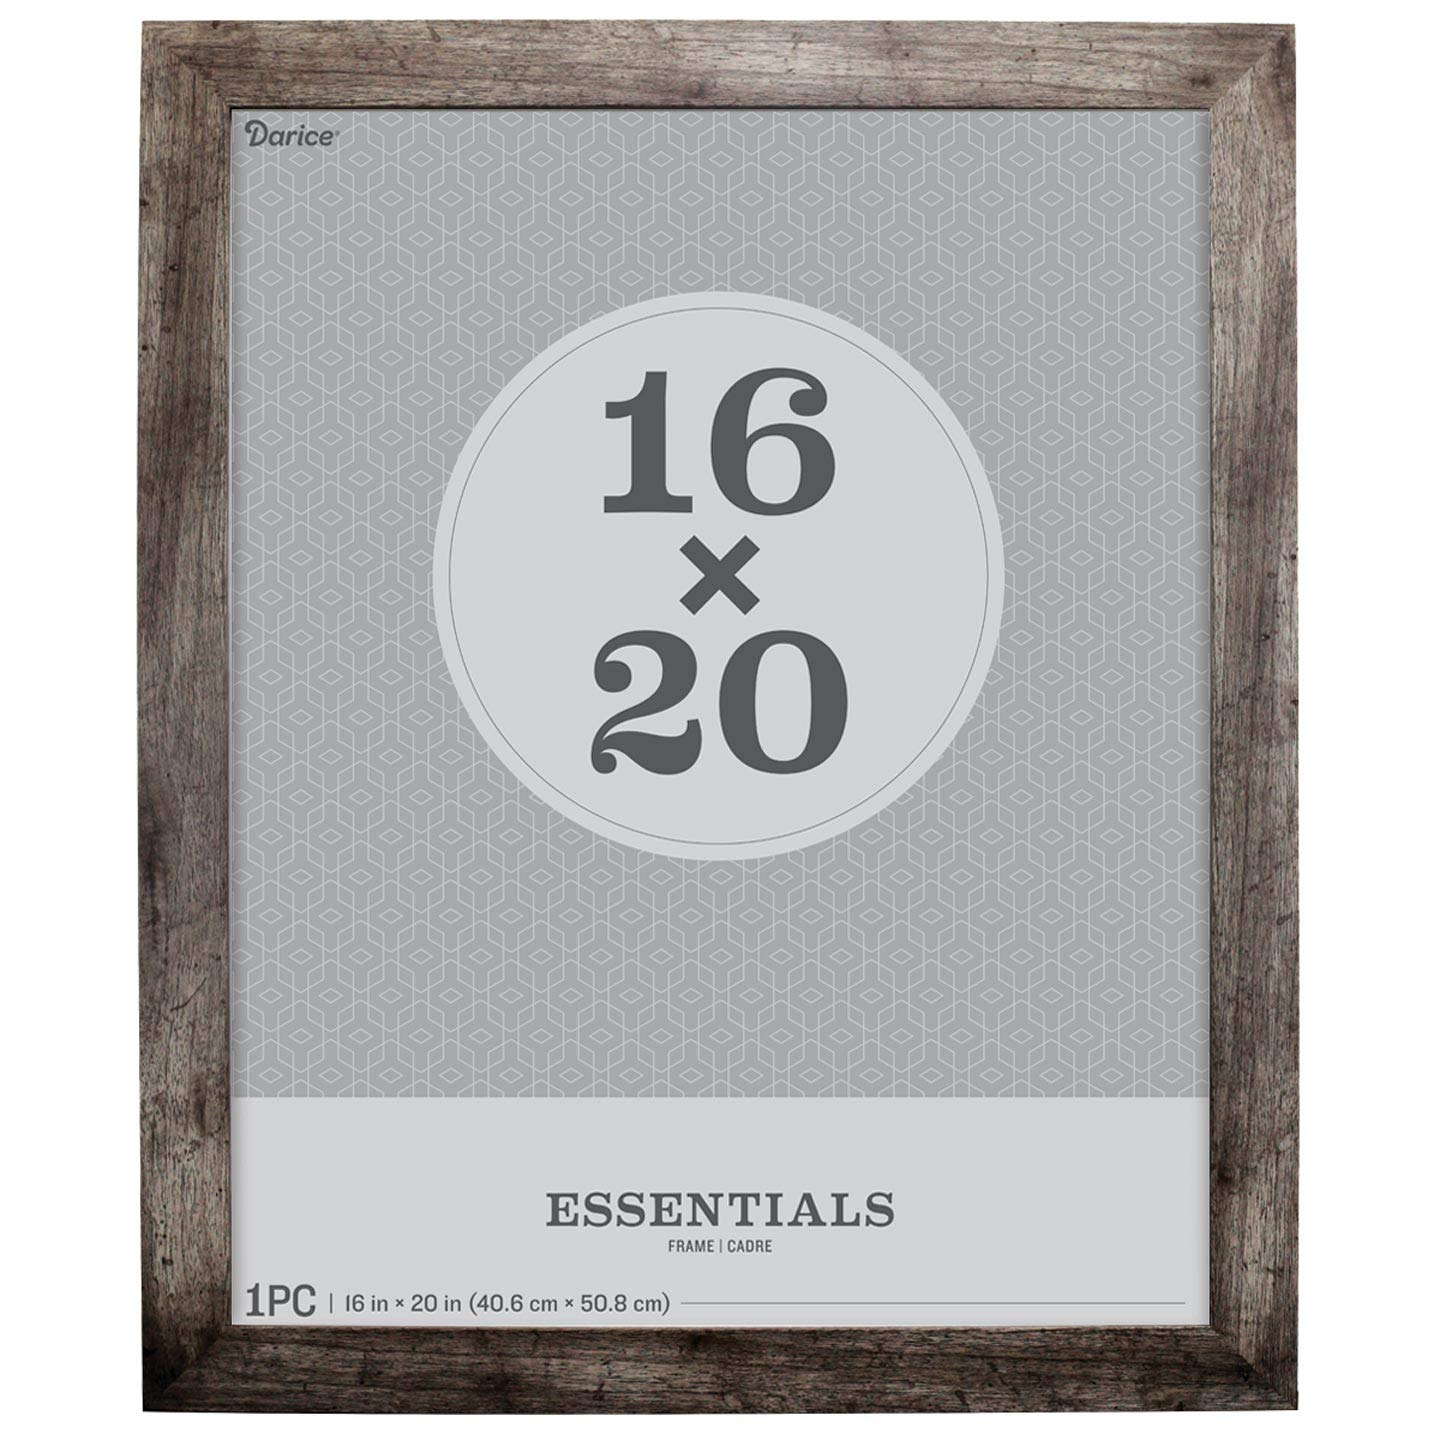 Darice Wall Frame: Grey, 16 x 20 Inches by Darice